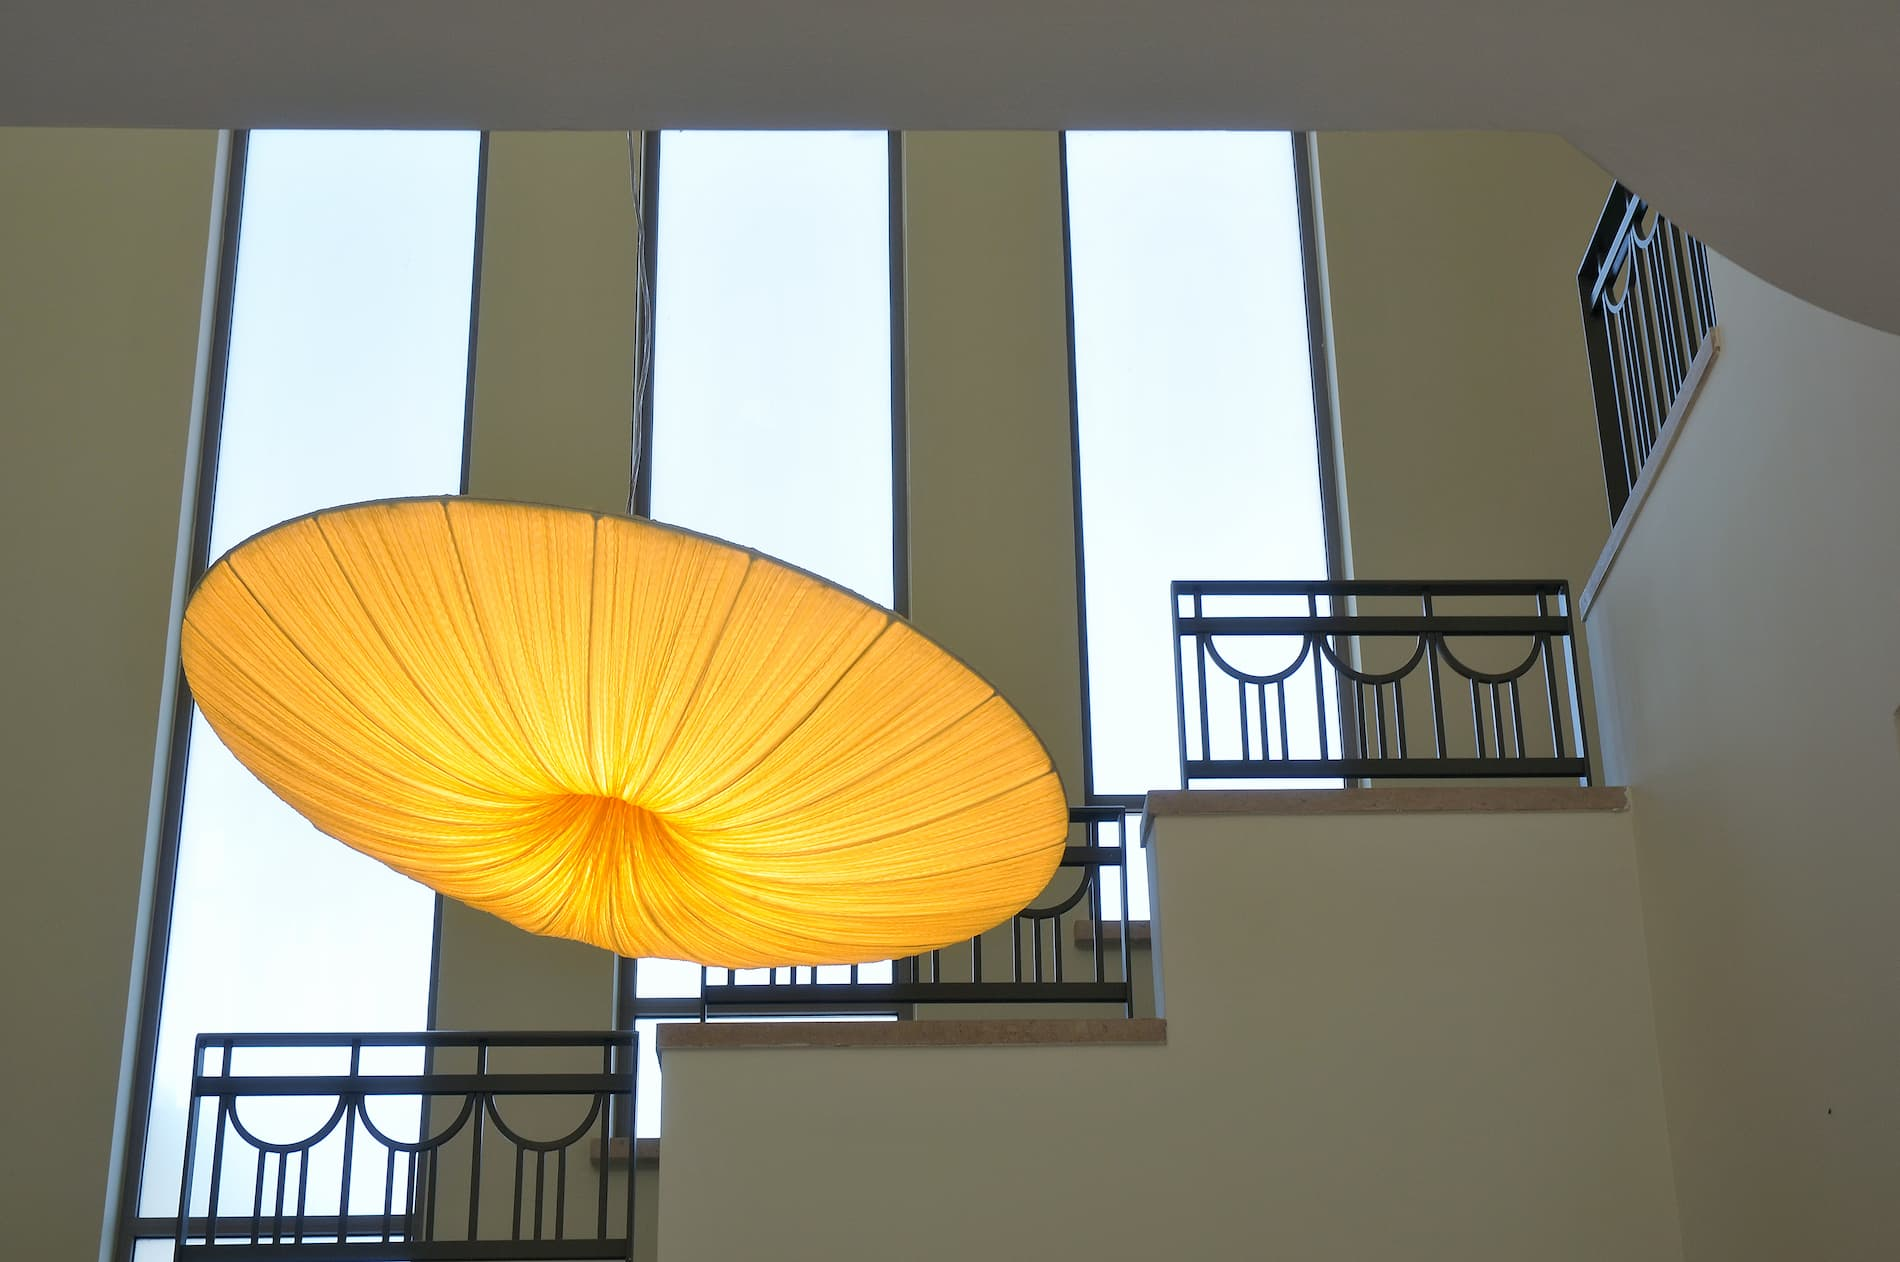 A large round light fixture made of folded fabric hangs in front of a staircase against a wall with three tall rectangular windows.